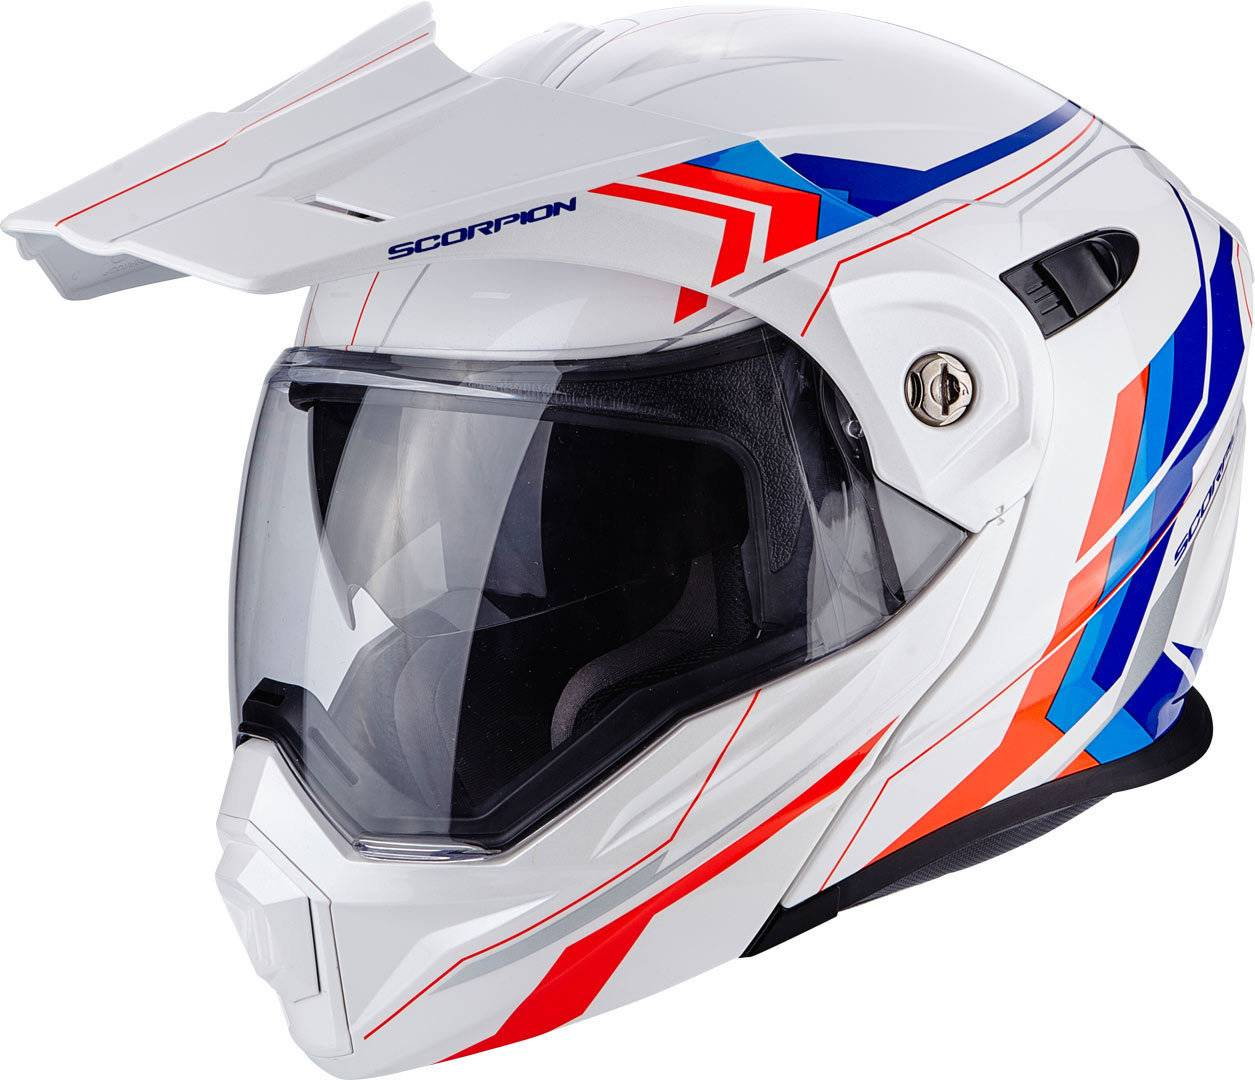 Scorpion ADX-1 Anima Casco Blanco/Rojo/Azul S (55/56)